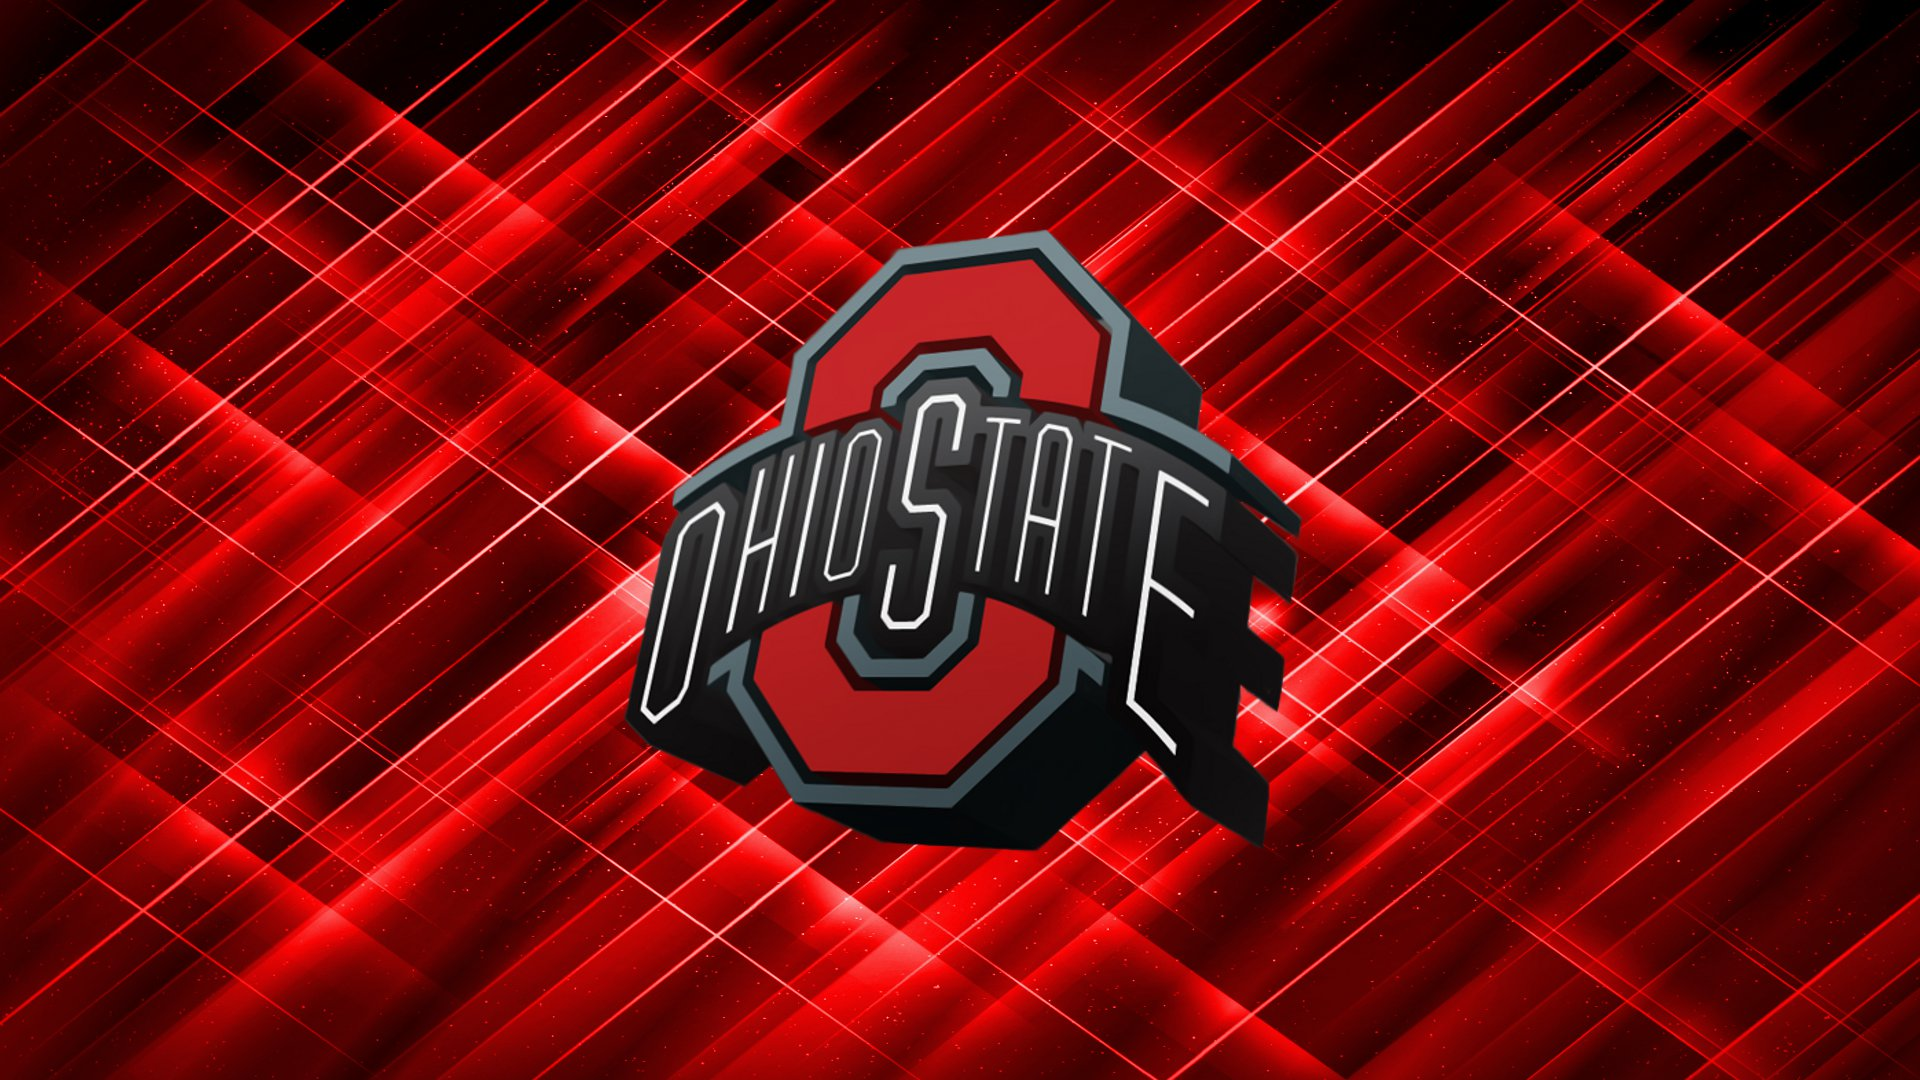 Football Wallpaper Cool Cool Ohio State Football: Cool Ohio State Buckeyes Wallpaper